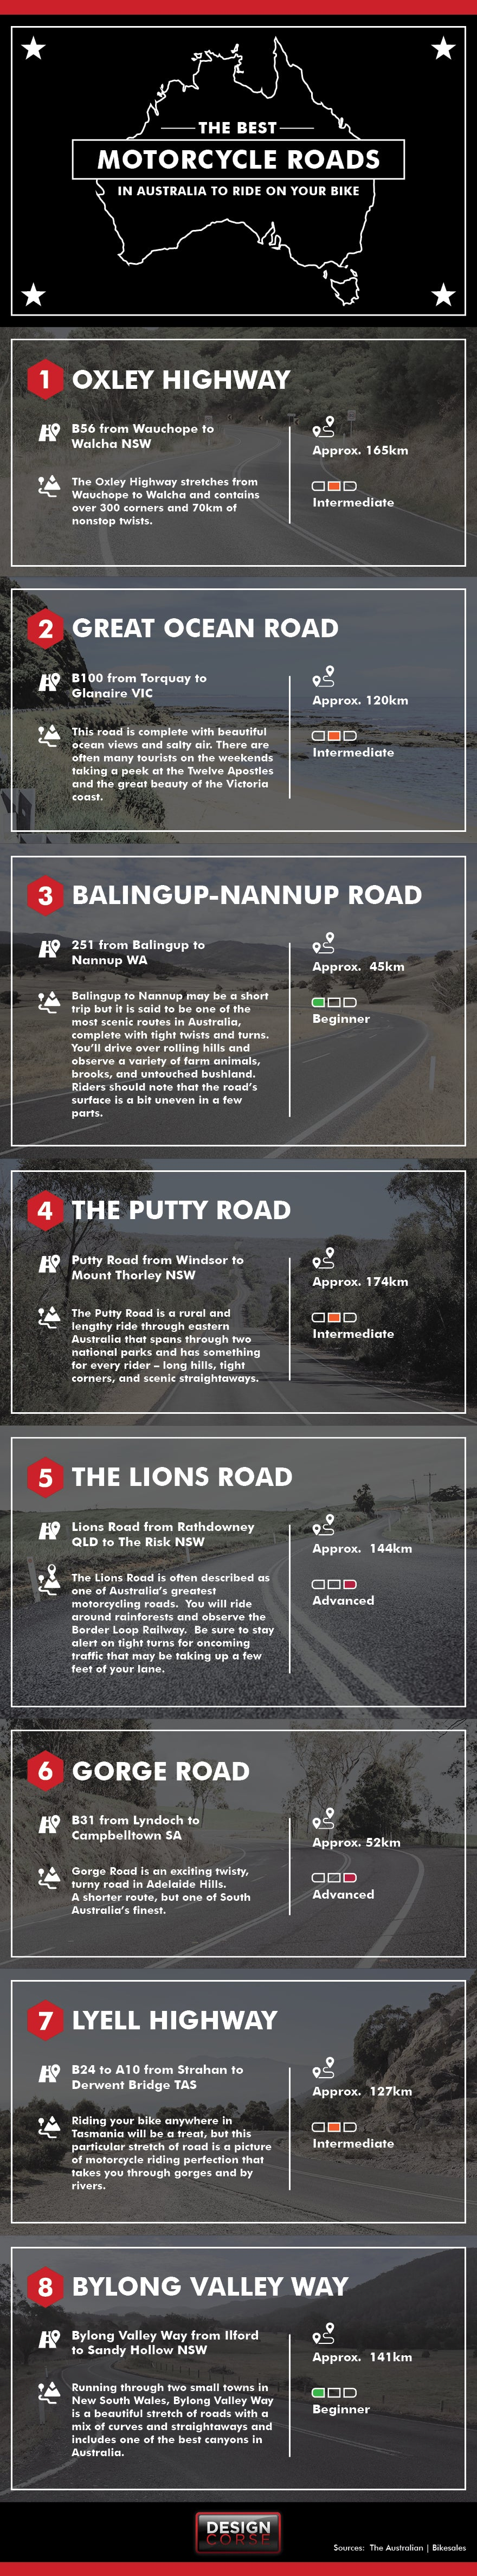 Best Motorcycle Roads in Australia